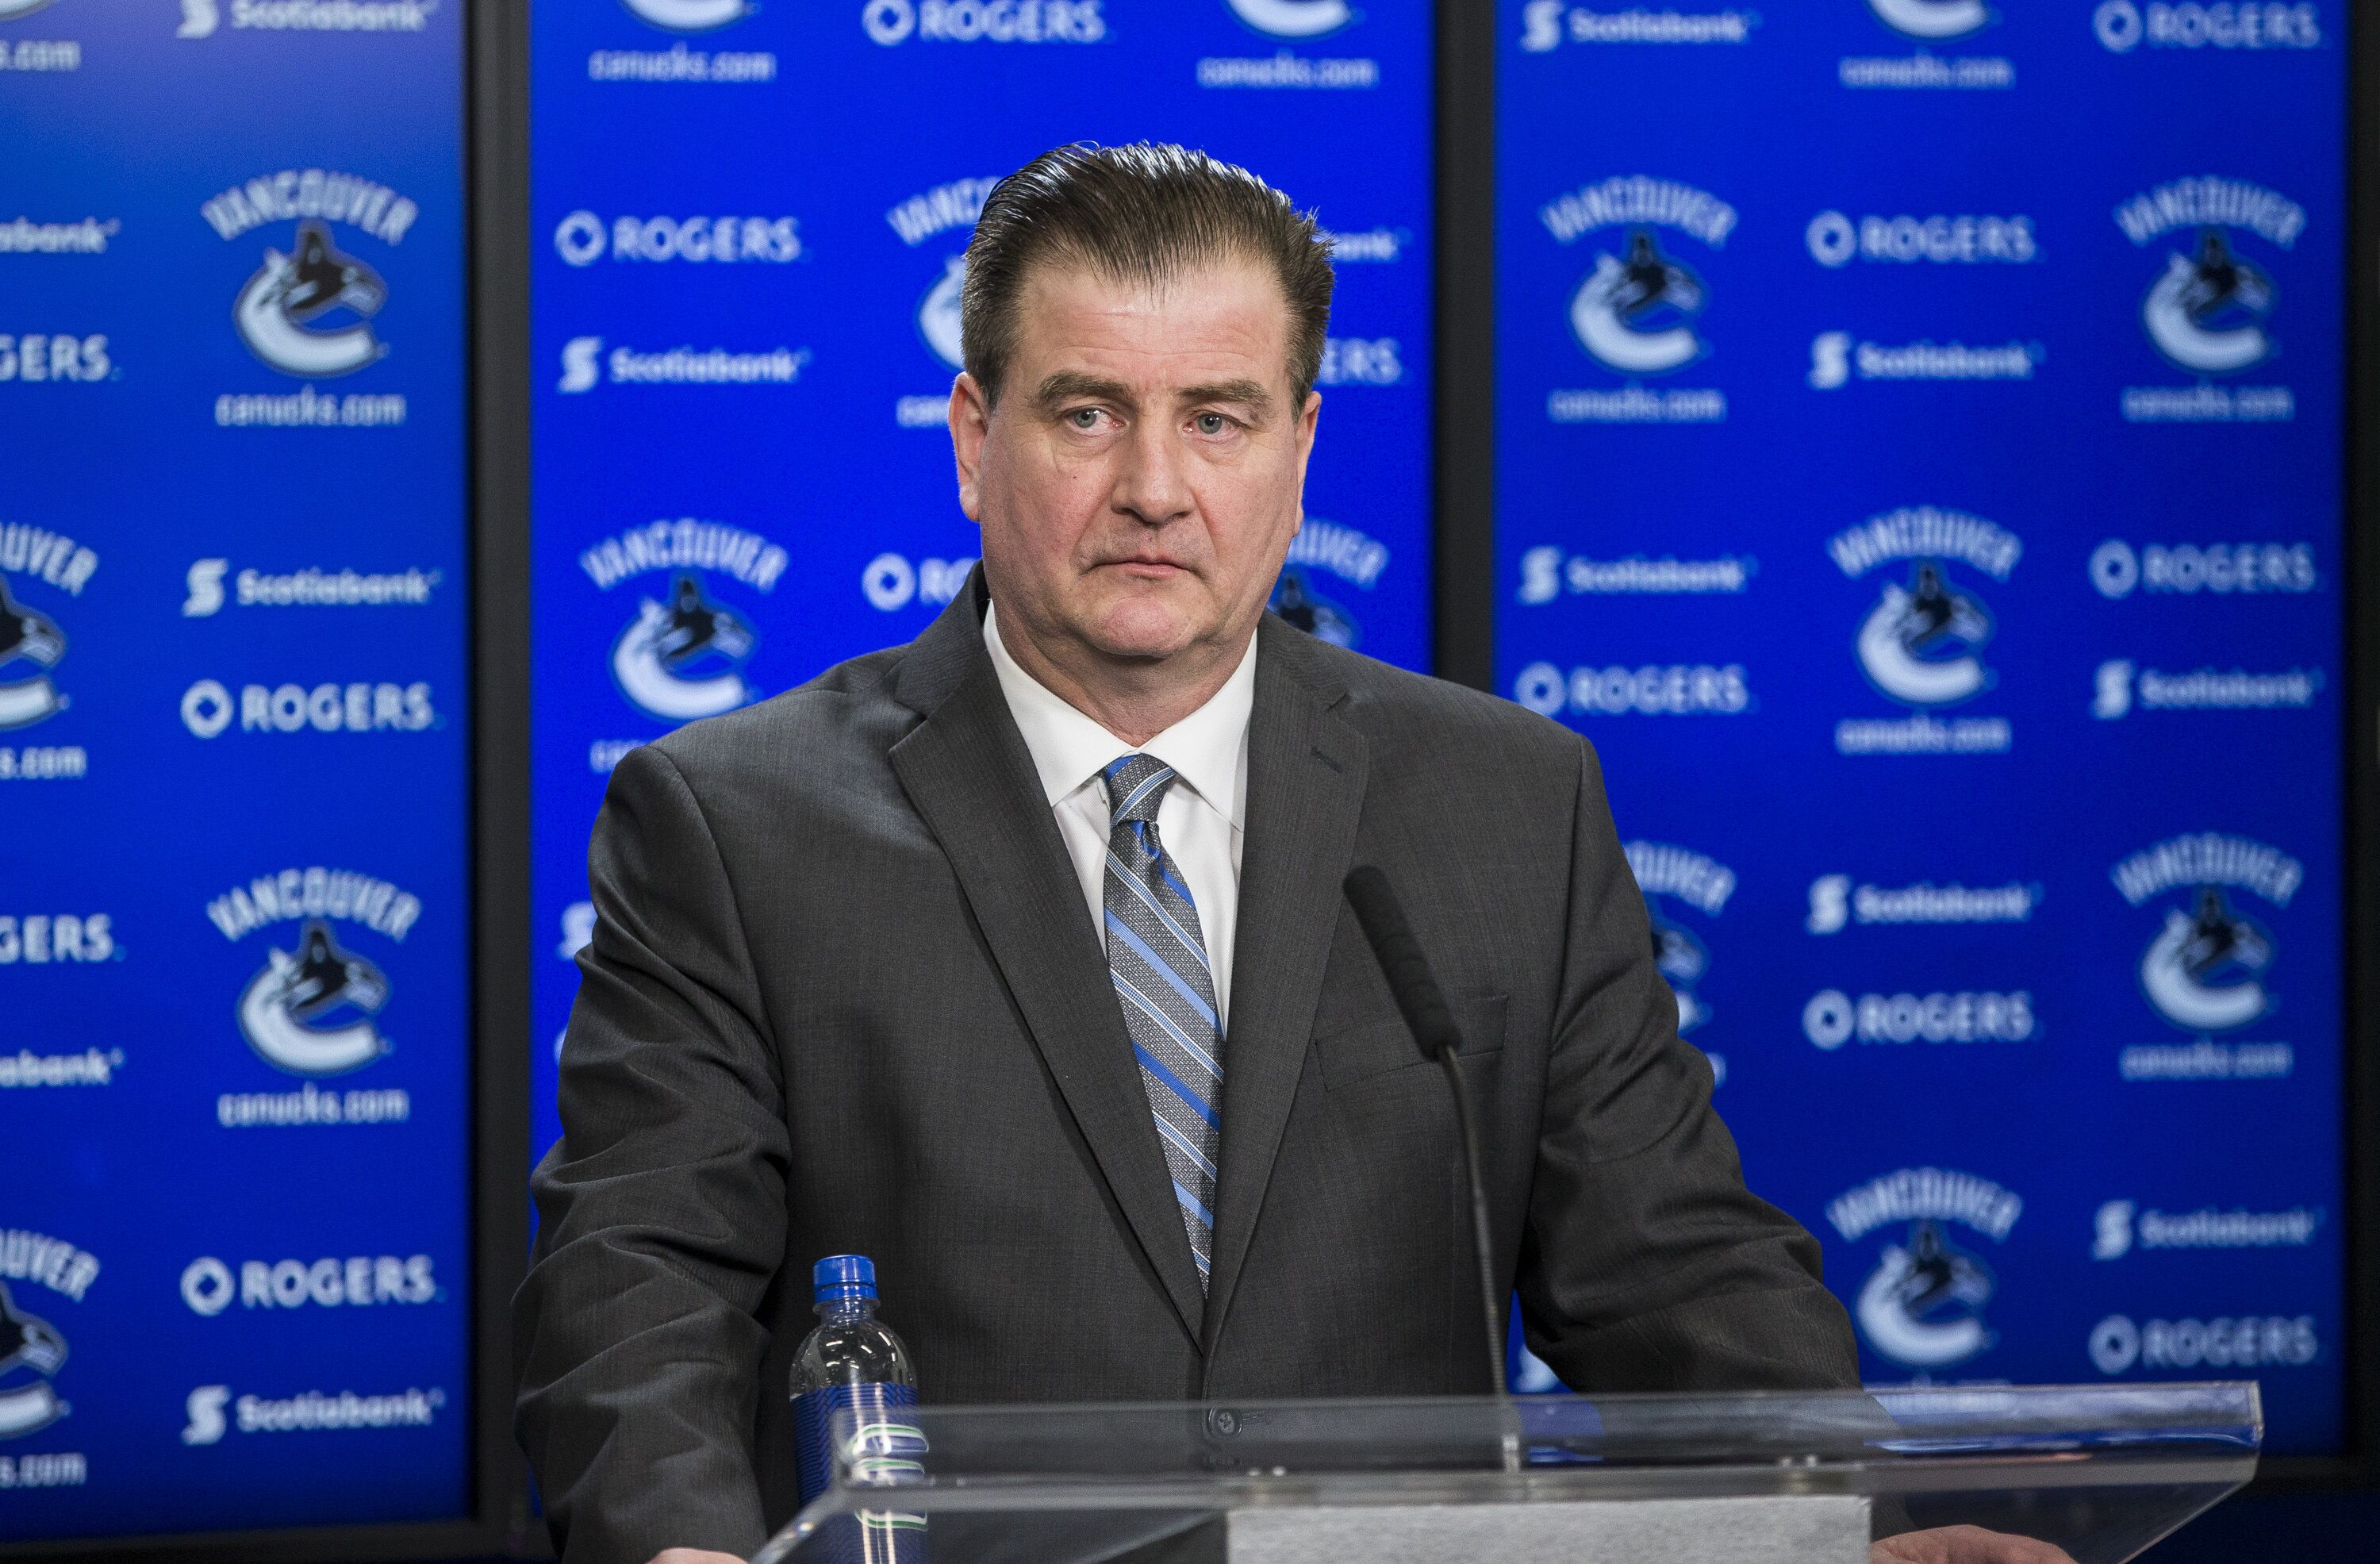 Vancouver Canucks roundtable: Has Jim Benning done enough?